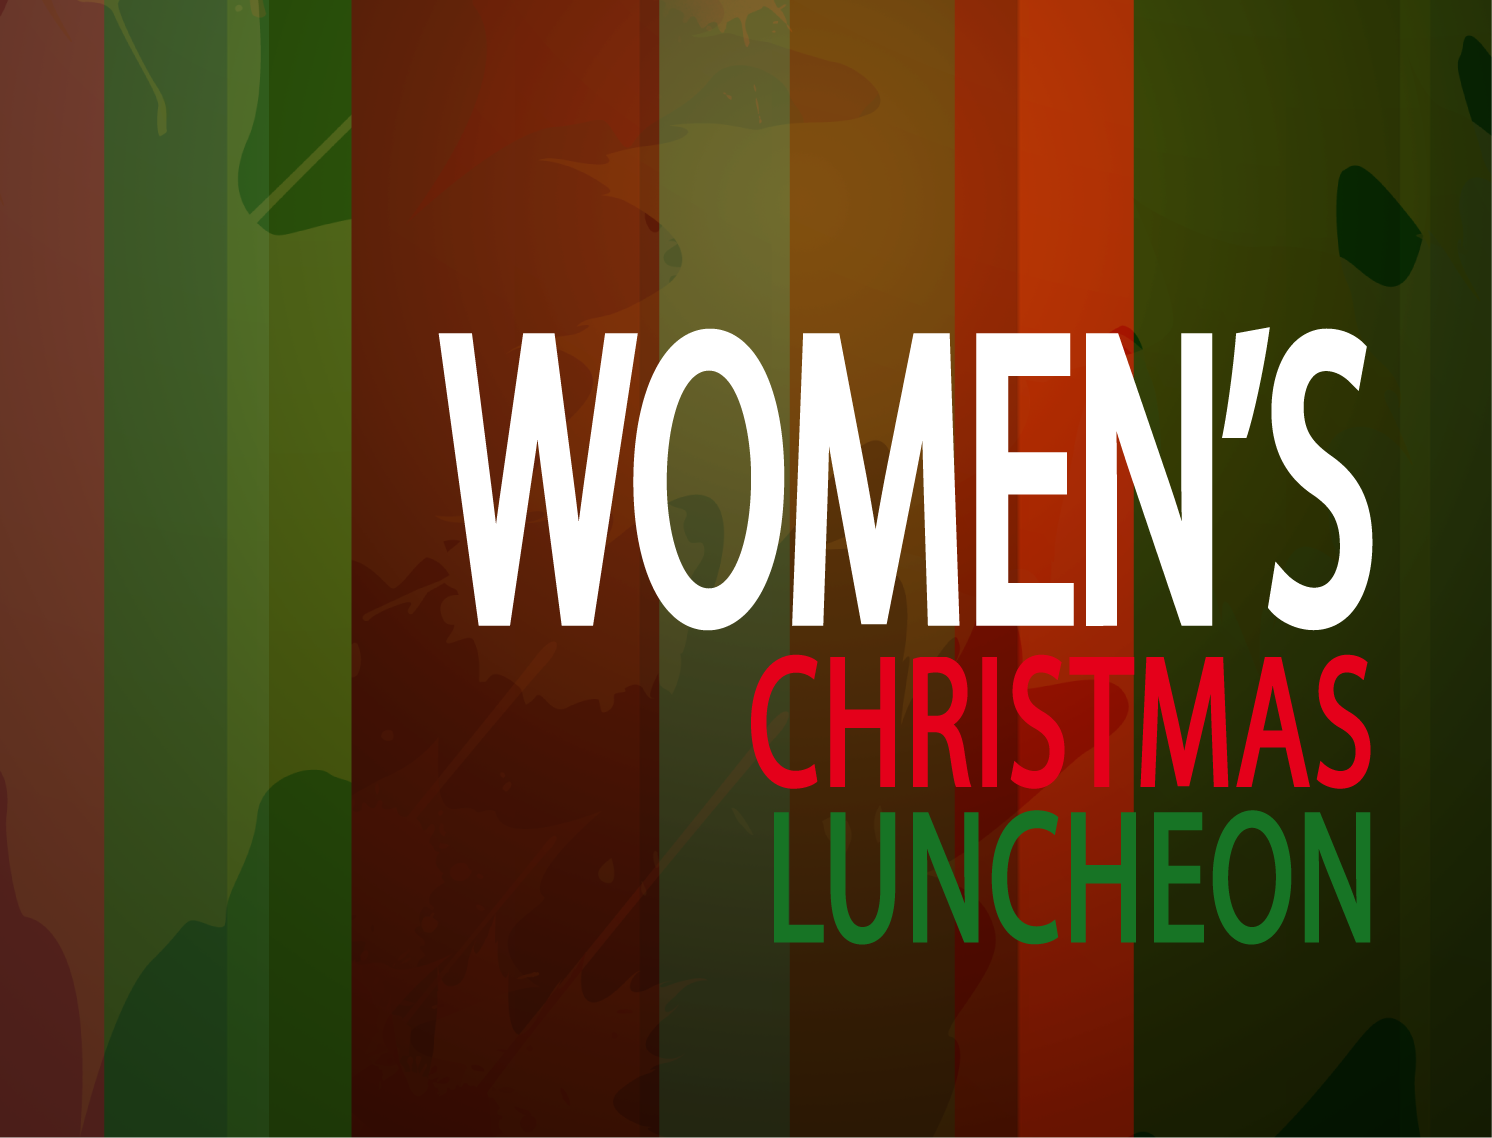 Womens christmas luncheon